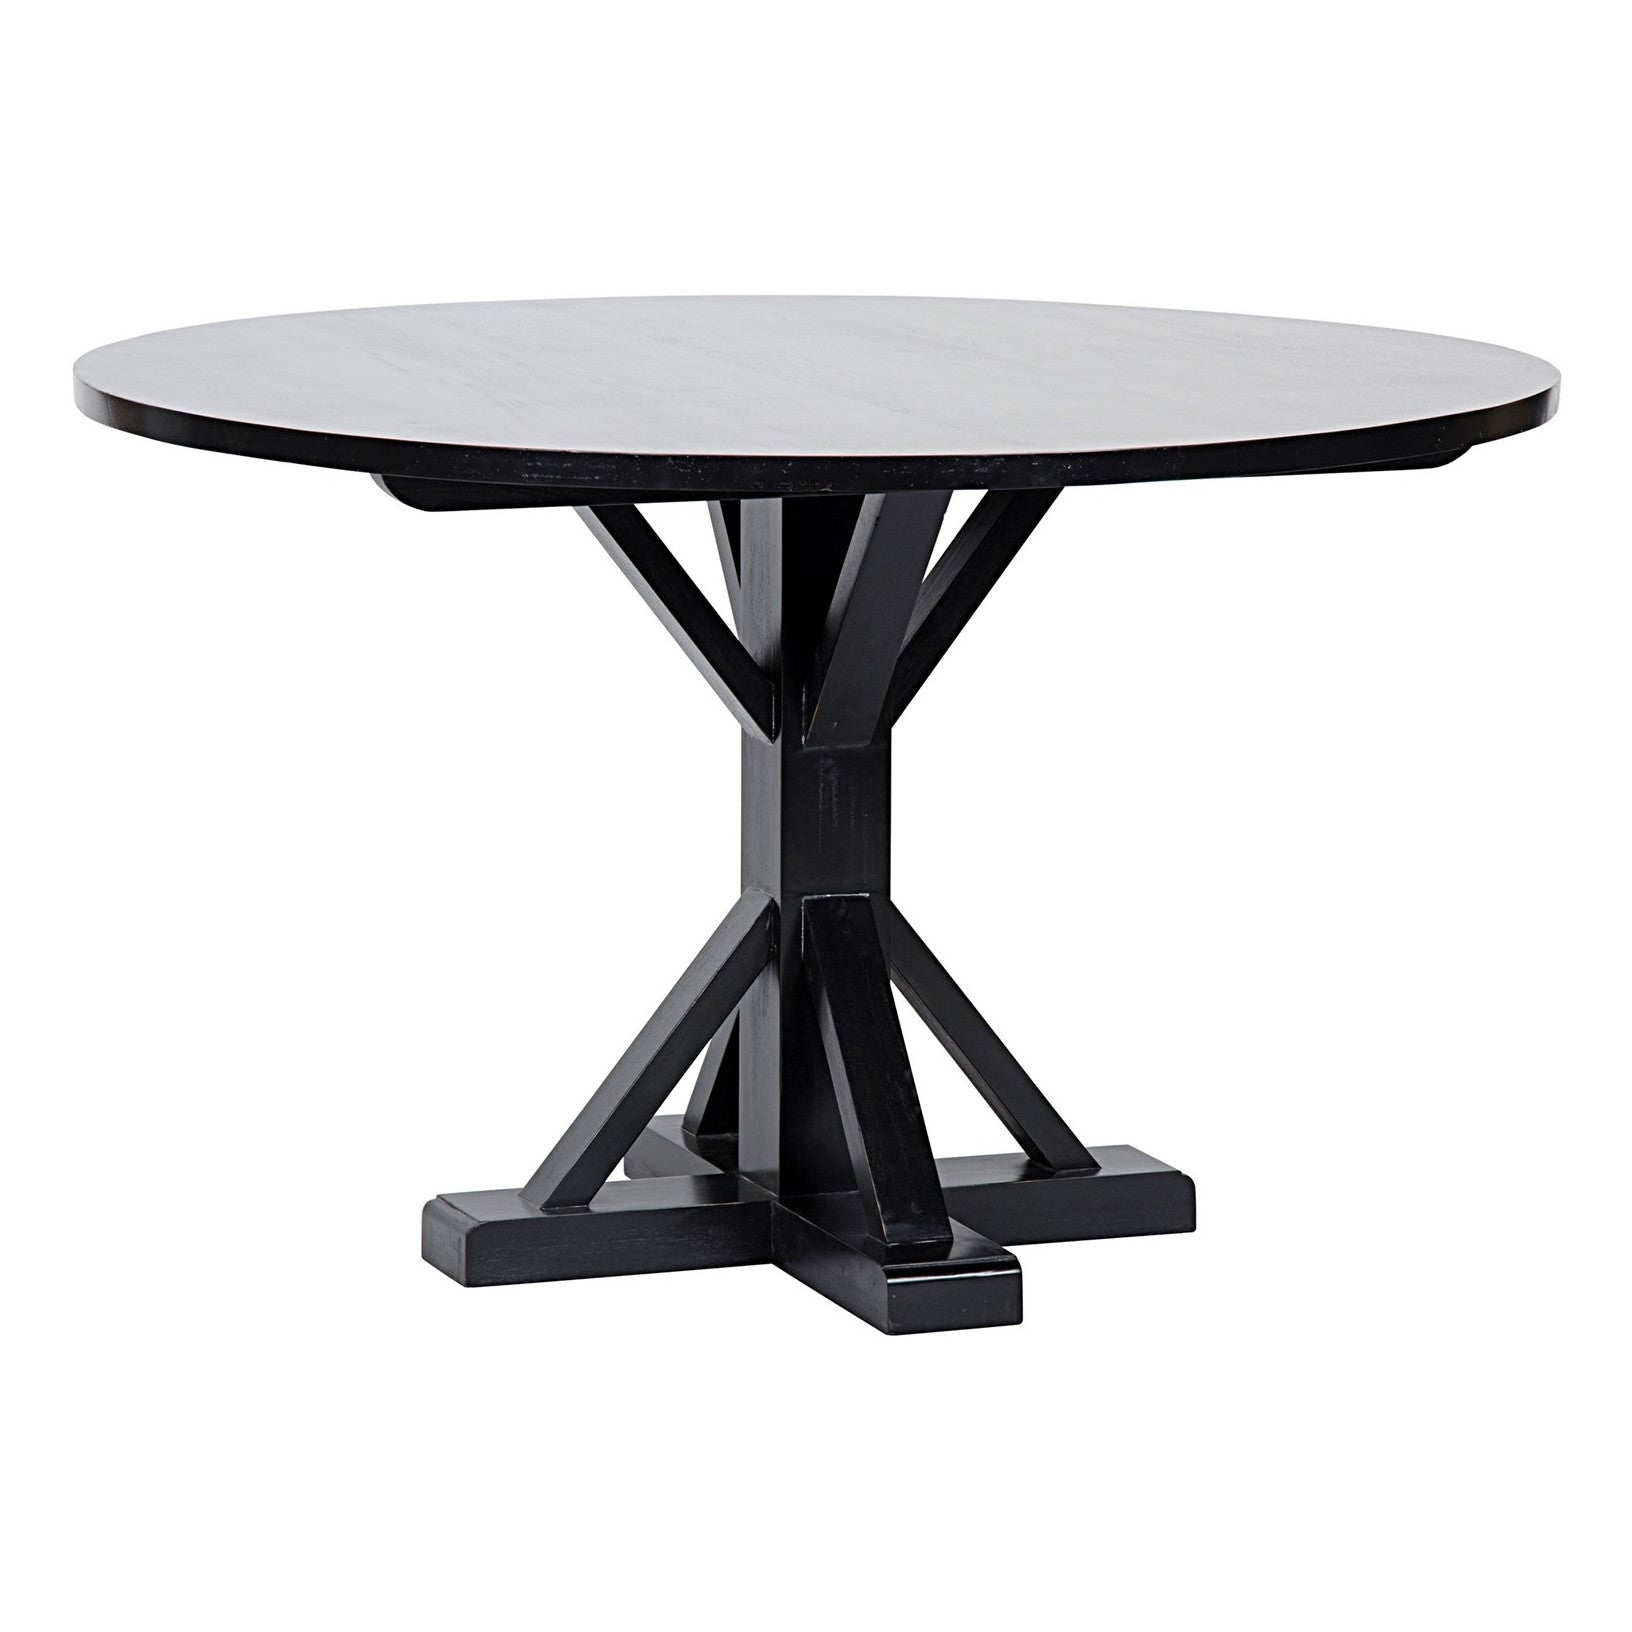 "Noir - 48"" Criss-Cross Round Table, Hand Rubbed Black"